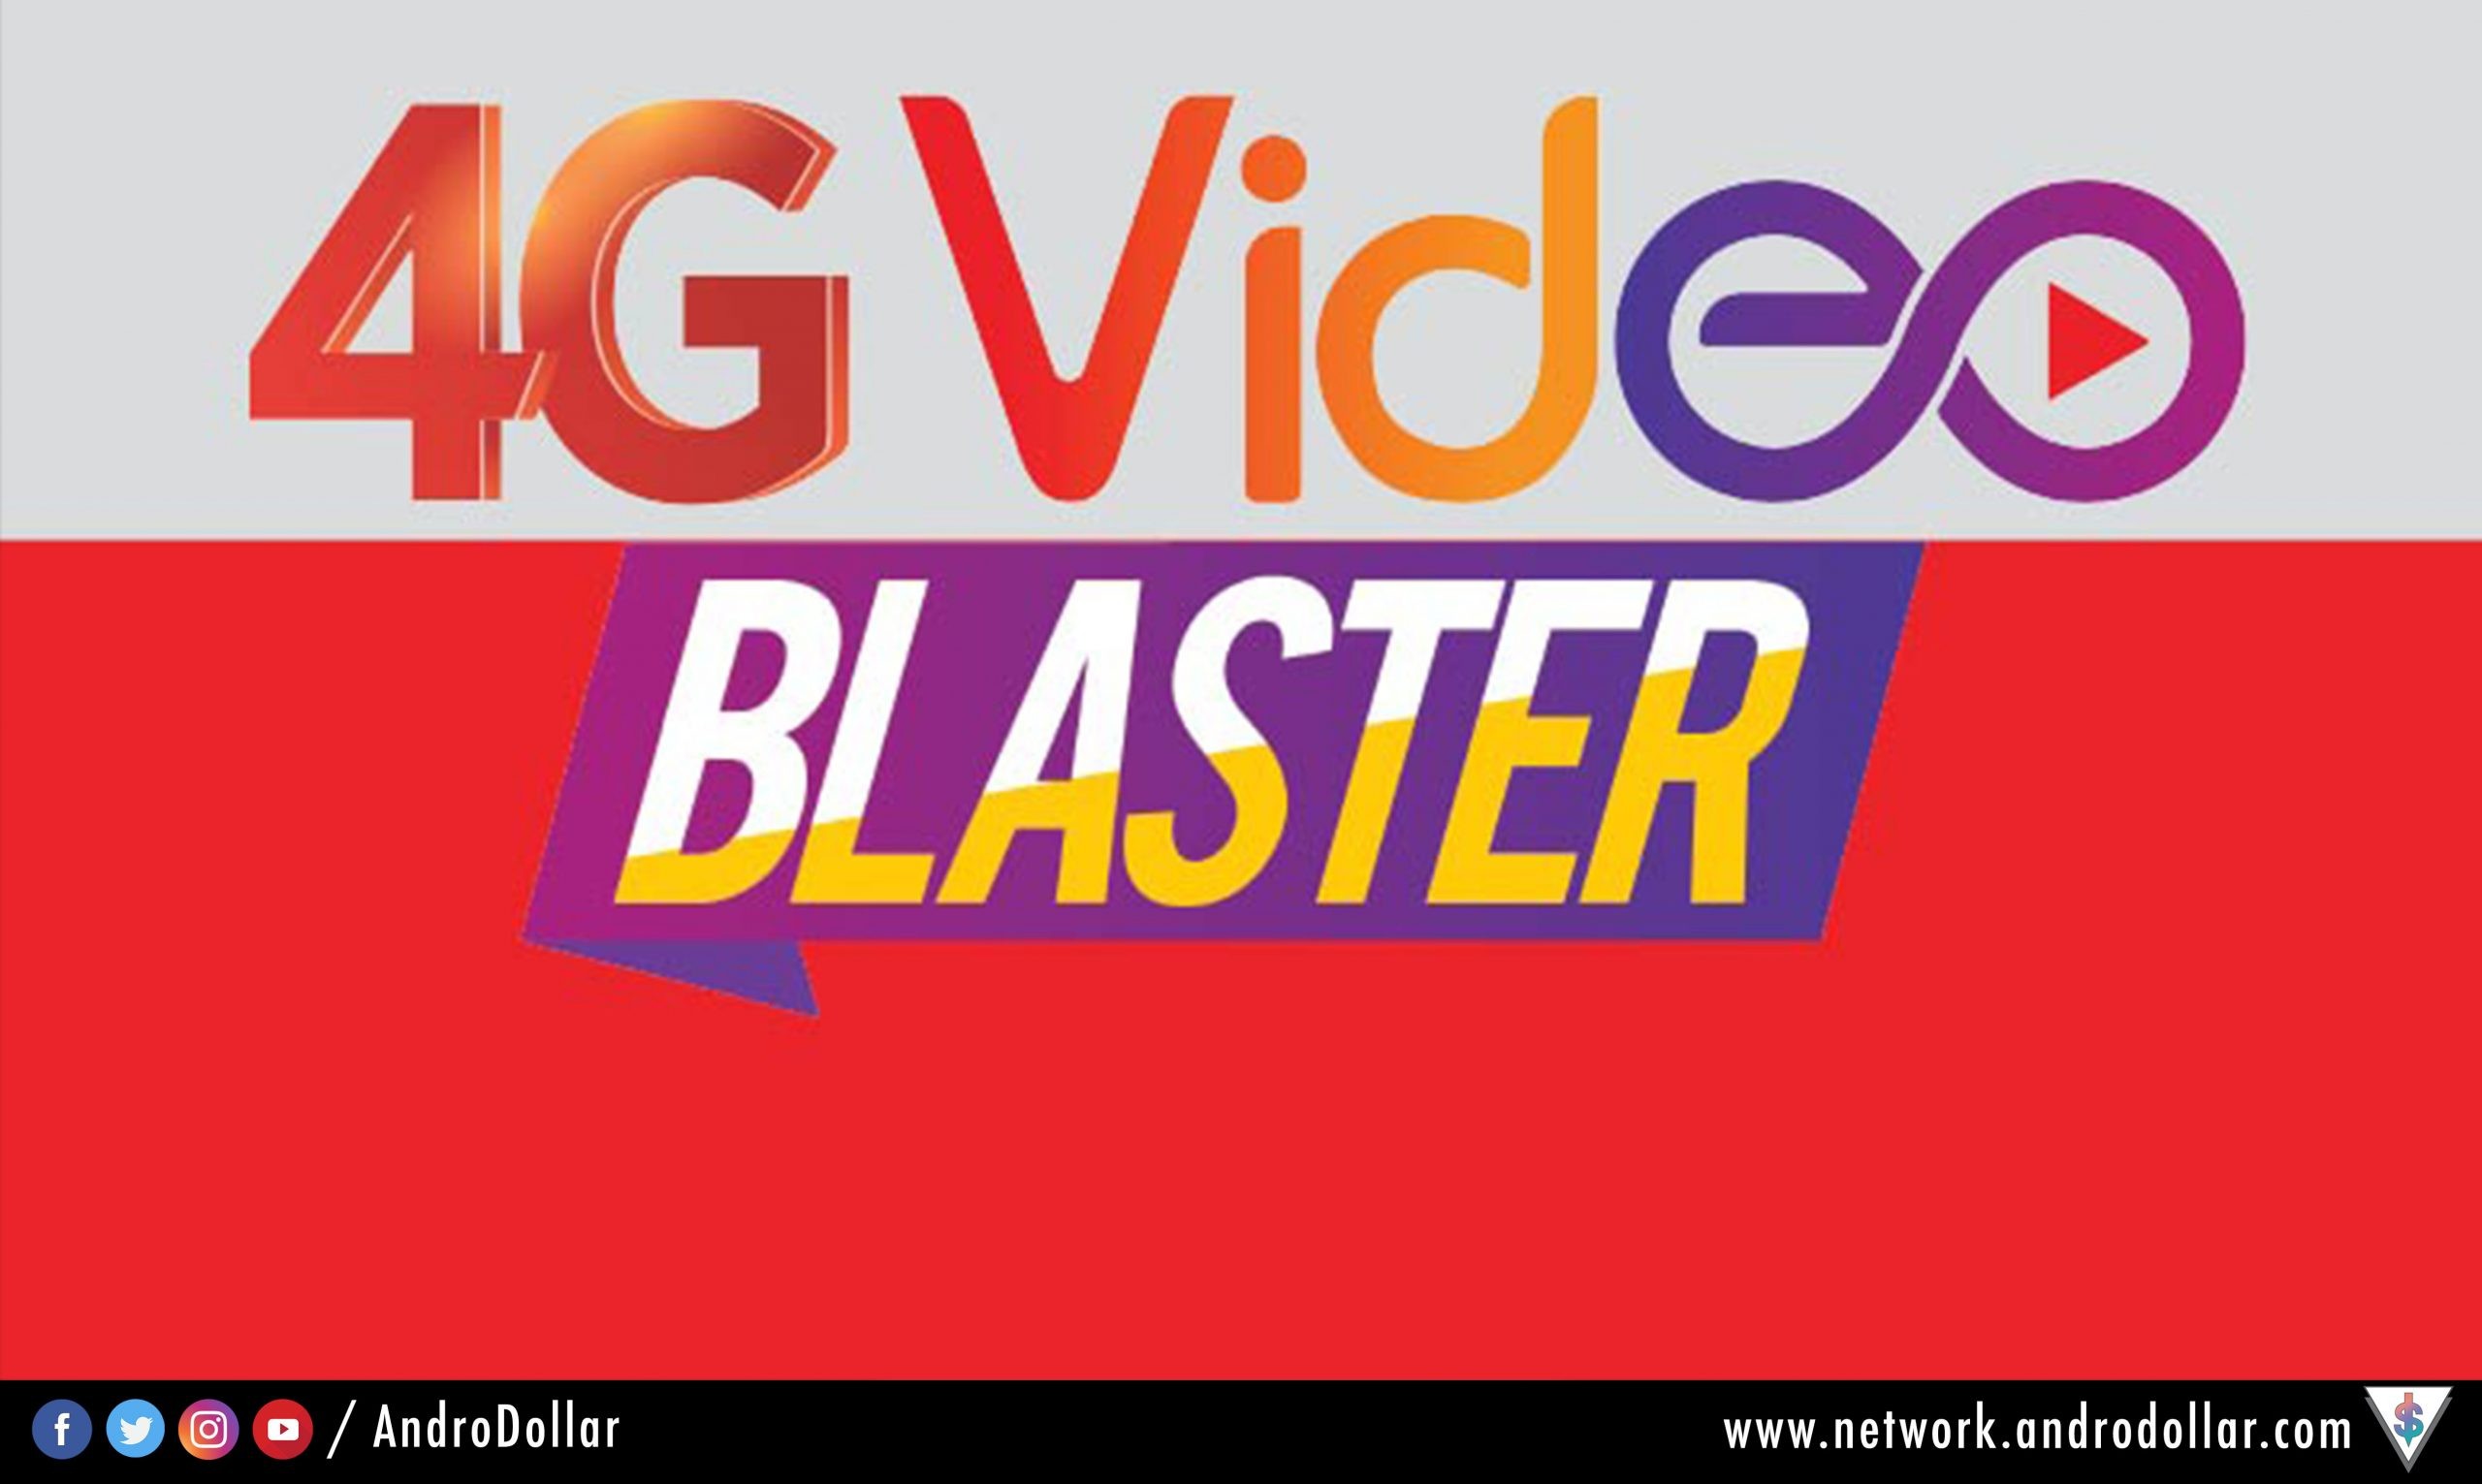 dialog 4g video scaled - Unlimited YouTube by Dialog 4G Video Blaster - Is it really unlimited?